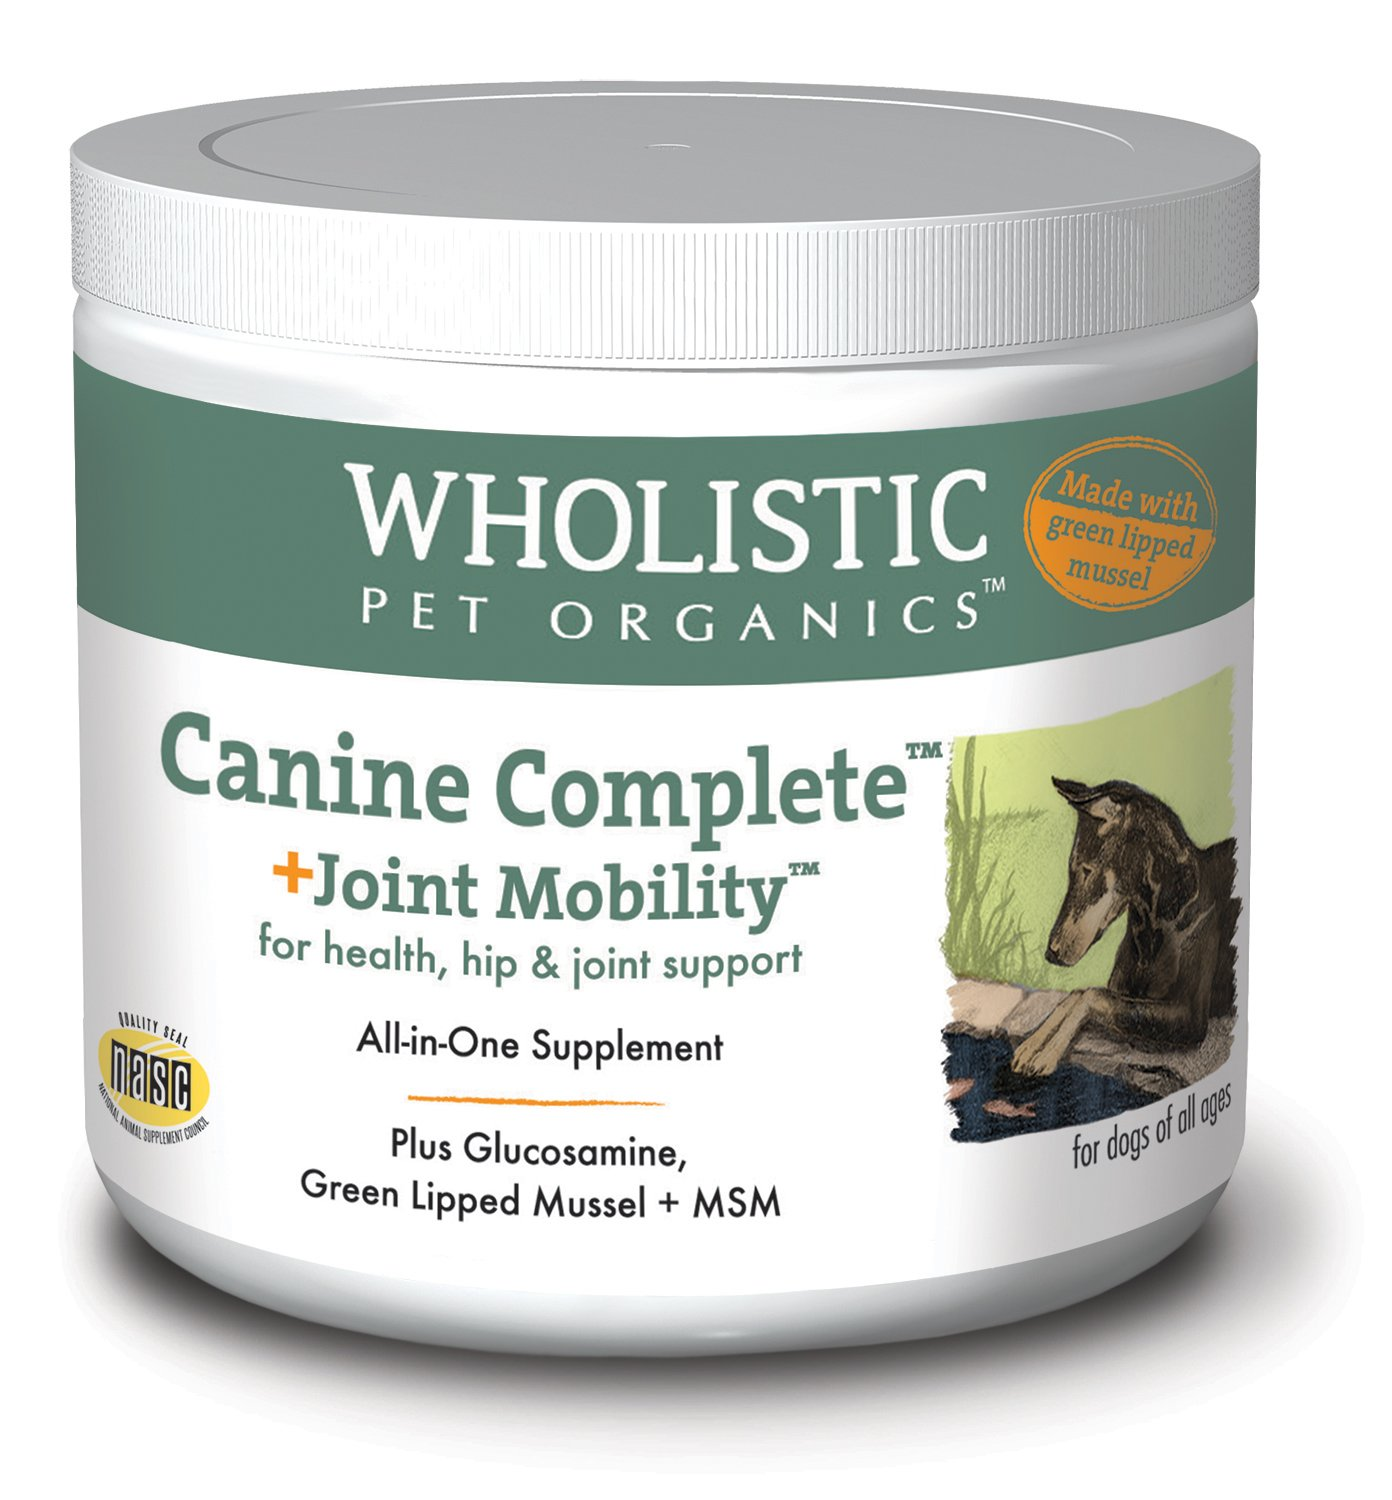 Wholistic Pet Organics Canine Complete Plus Joint Mobility with Green Lipped Mussel Supplement, 1 lb